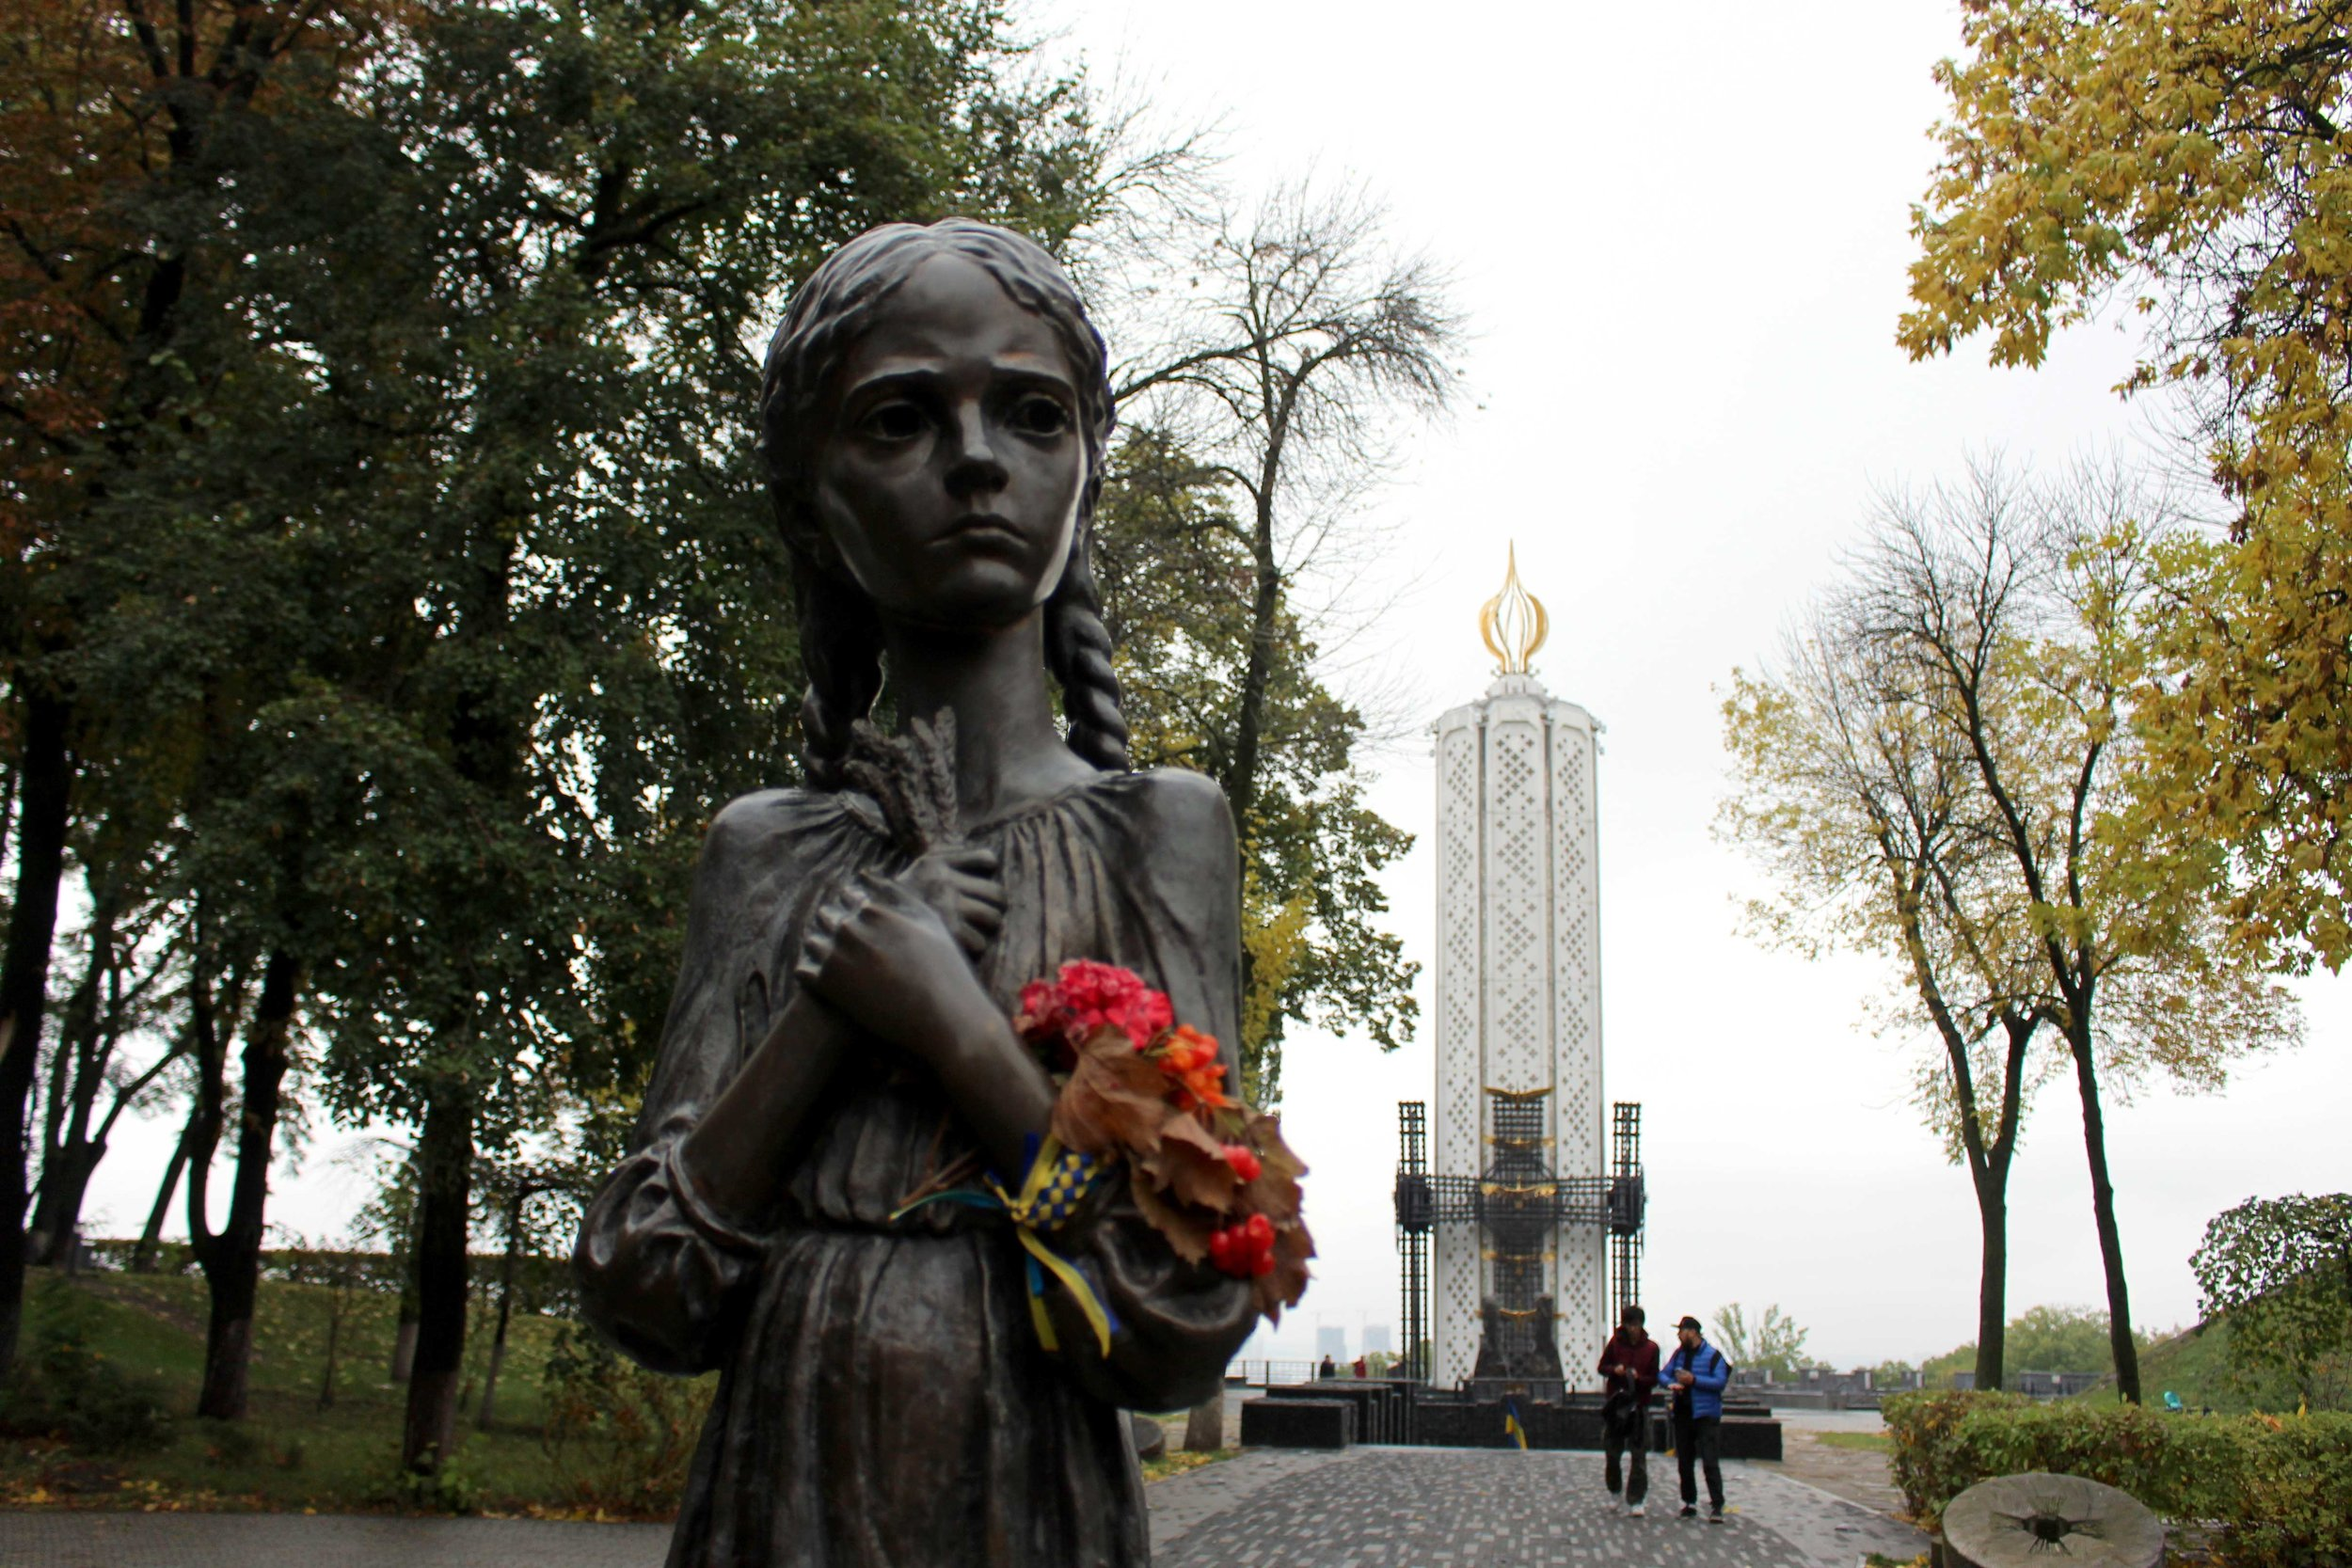 This memorial statue stands in Kyiv.